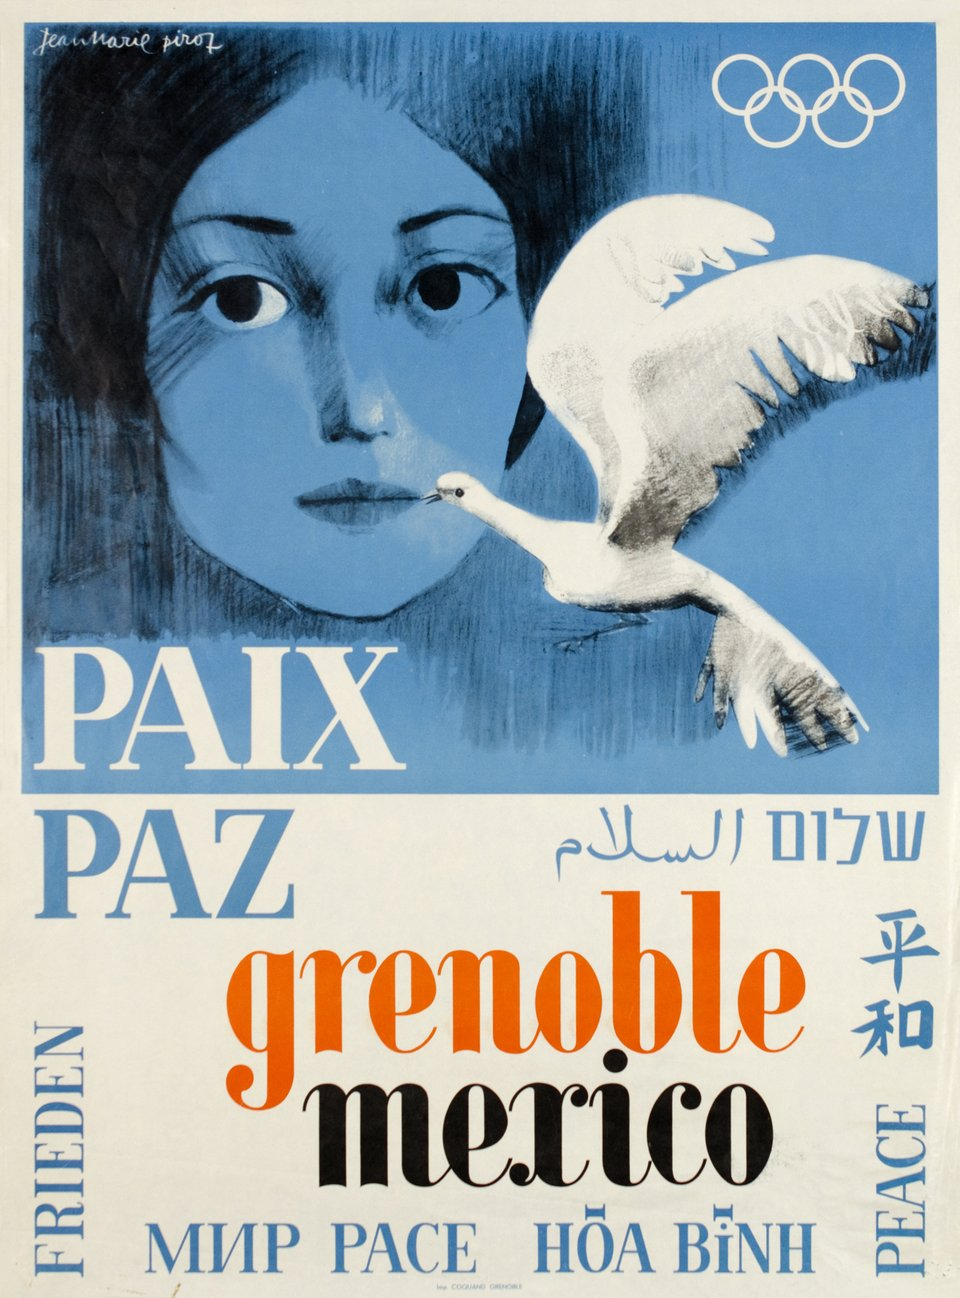 PAIX PAZ Grenoble Mexico 68 – Affiche ancienne – Jean-Marie PIROT – 1968